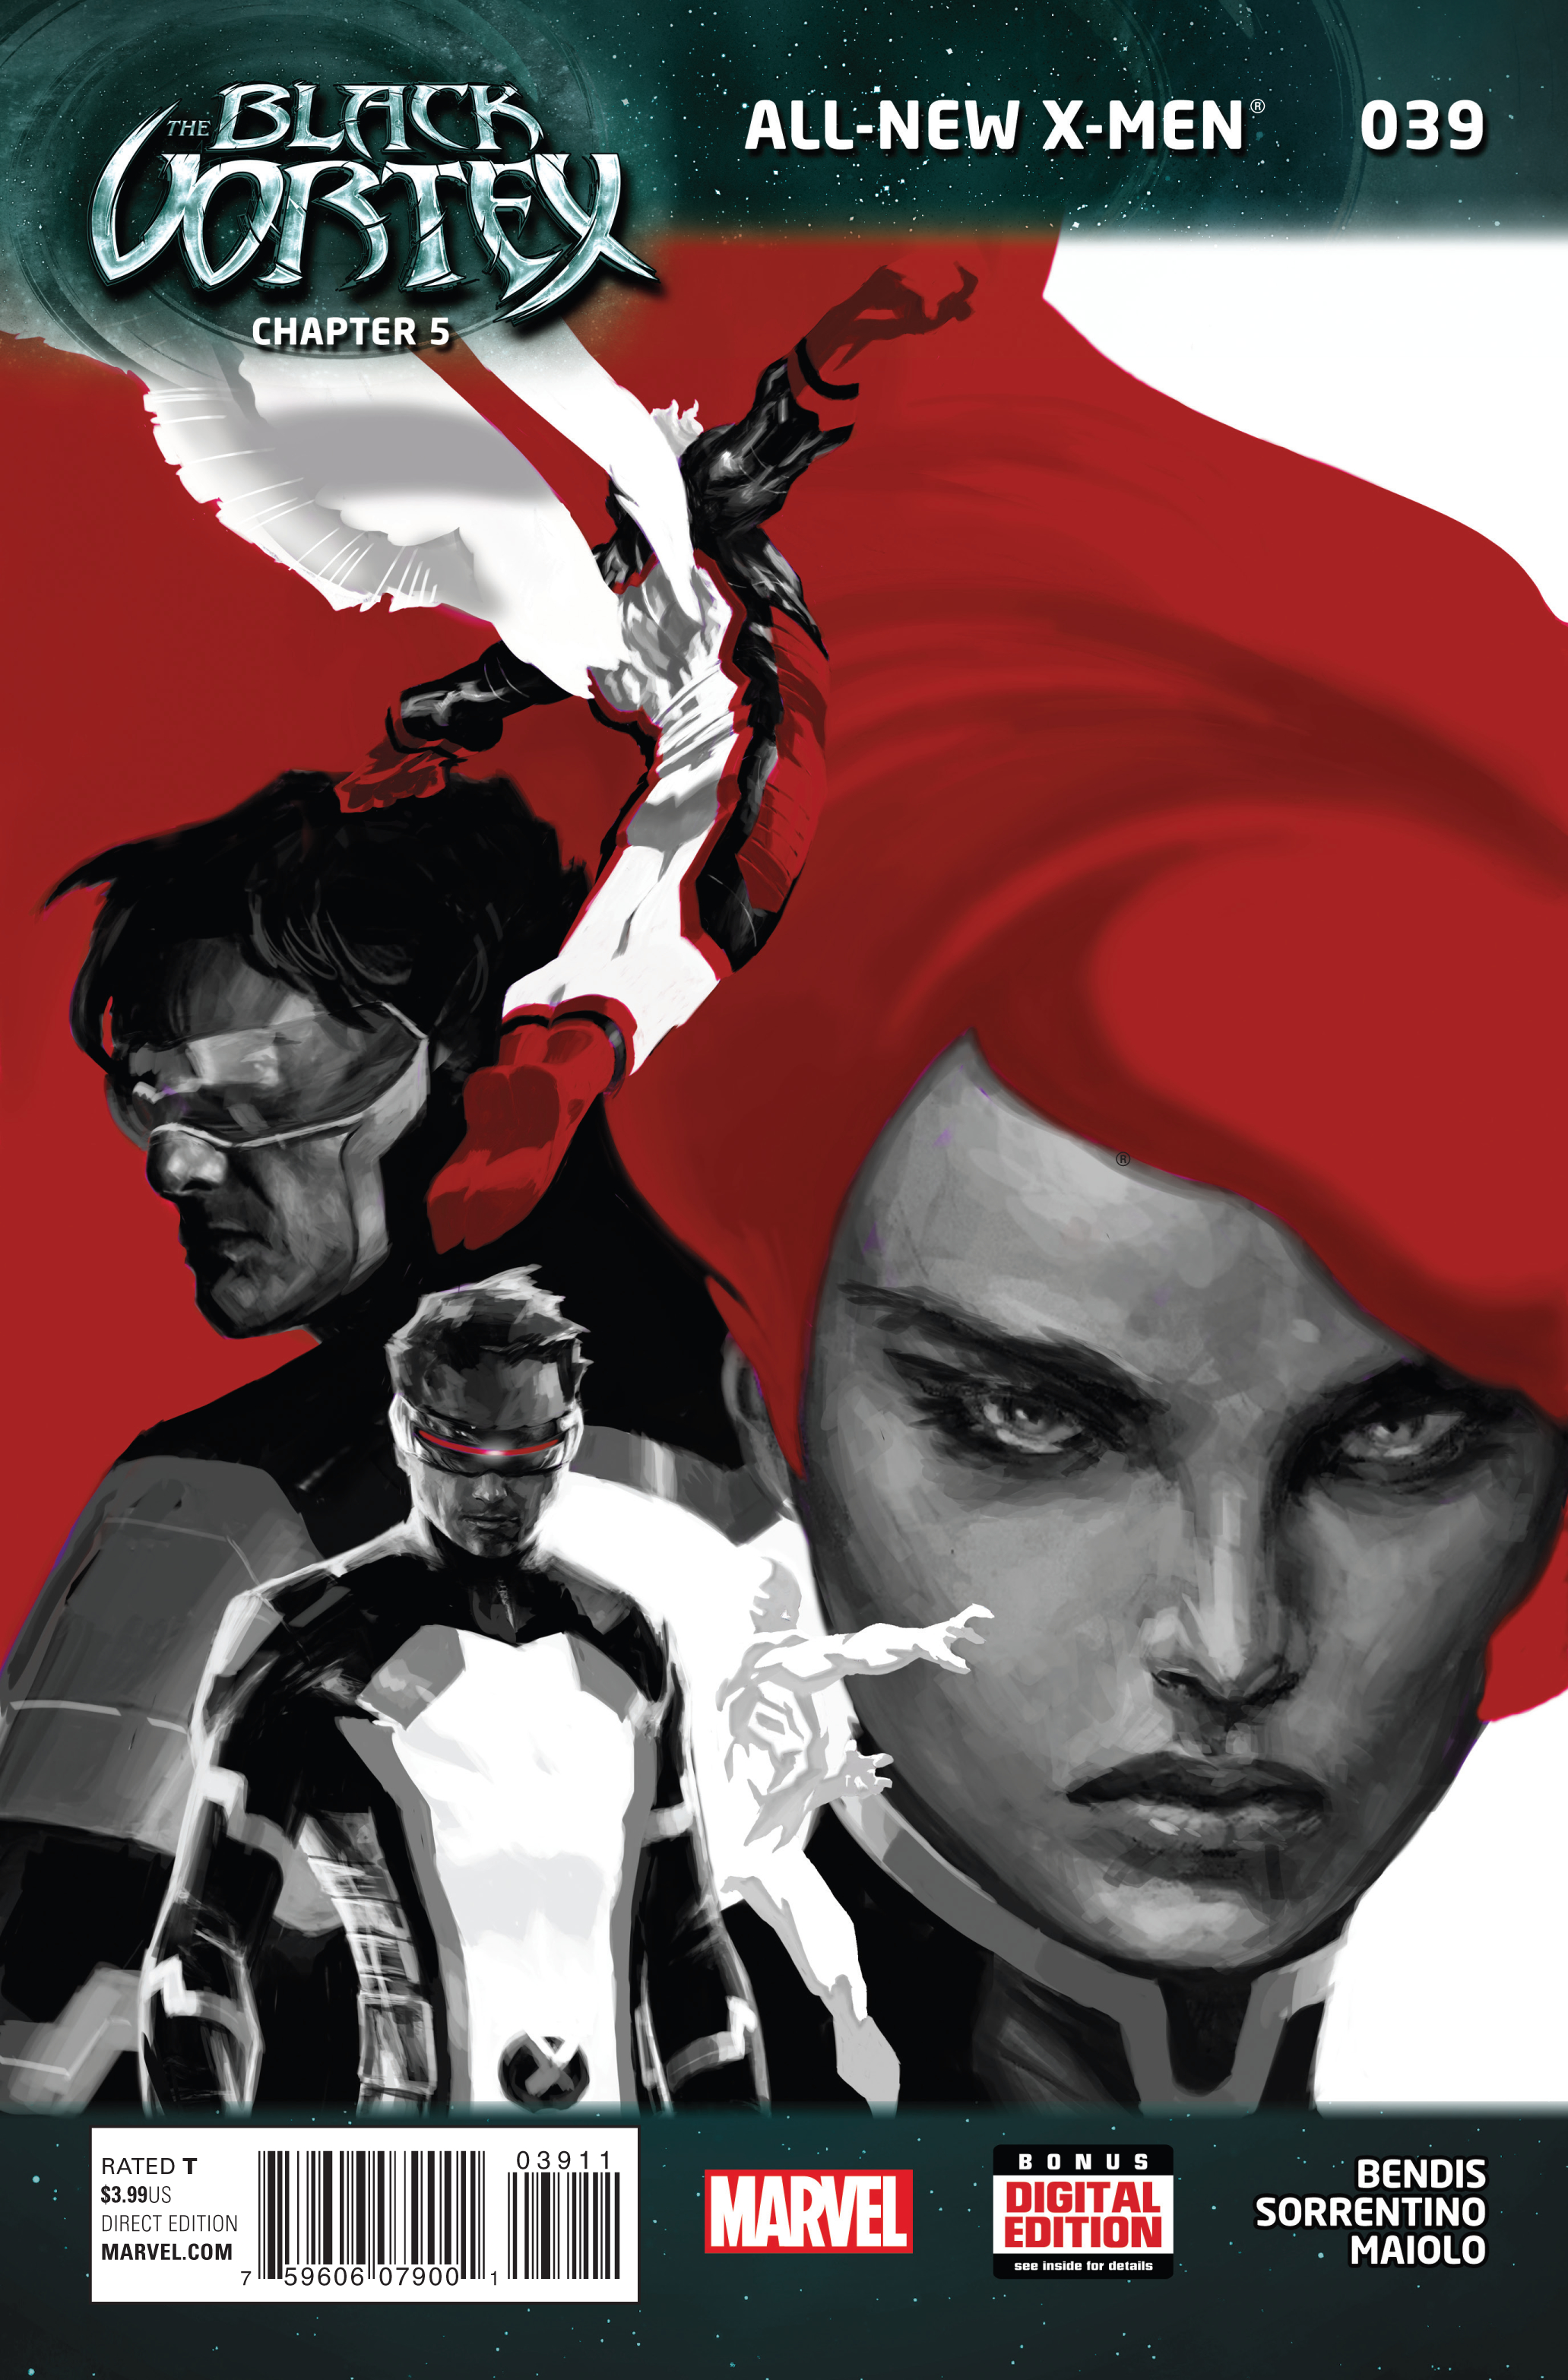 ALL NEW X-MEN #39 BV